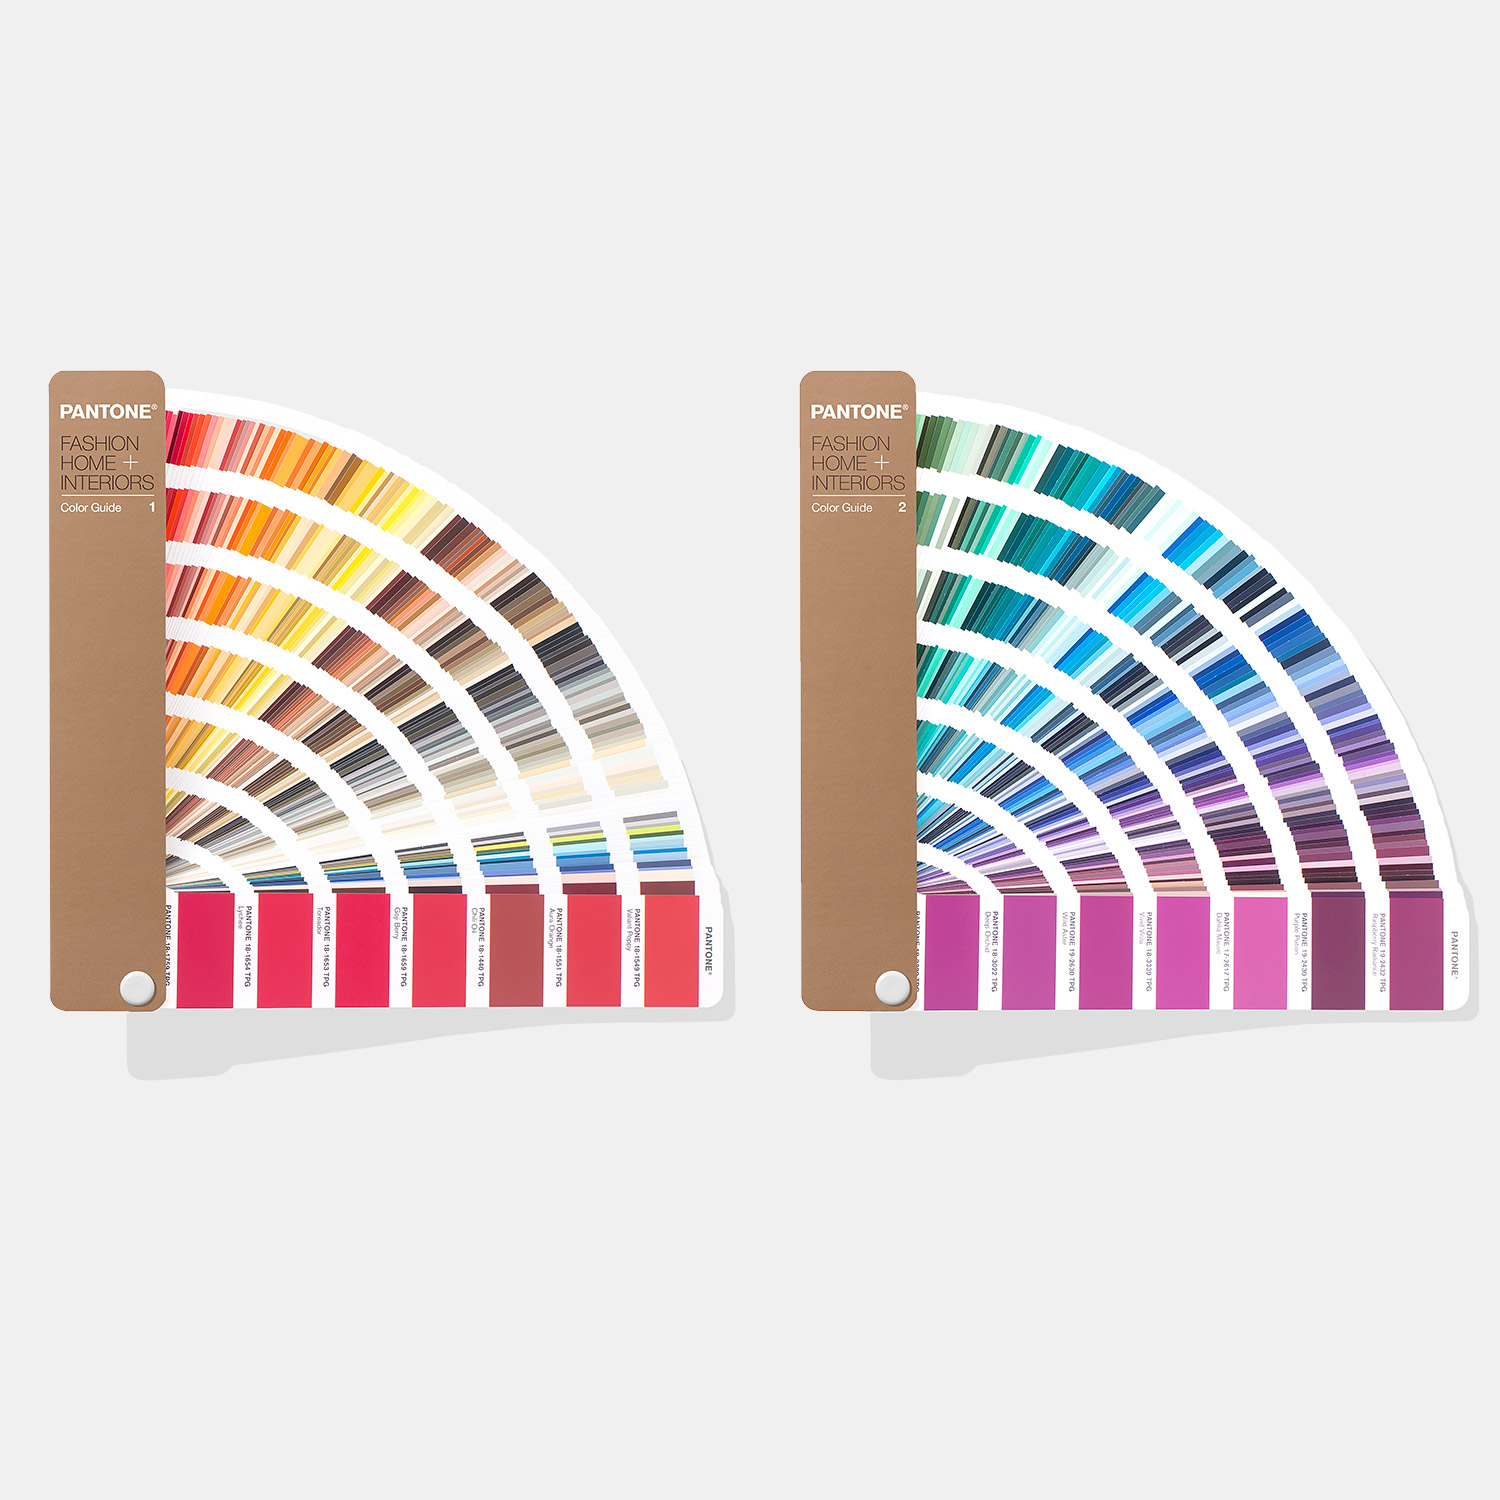 Pantone Fhi Color Guide 2019 Edition A Two Guide Set For Hard Home And Fashion Accessories Pantone Canada Polycolors